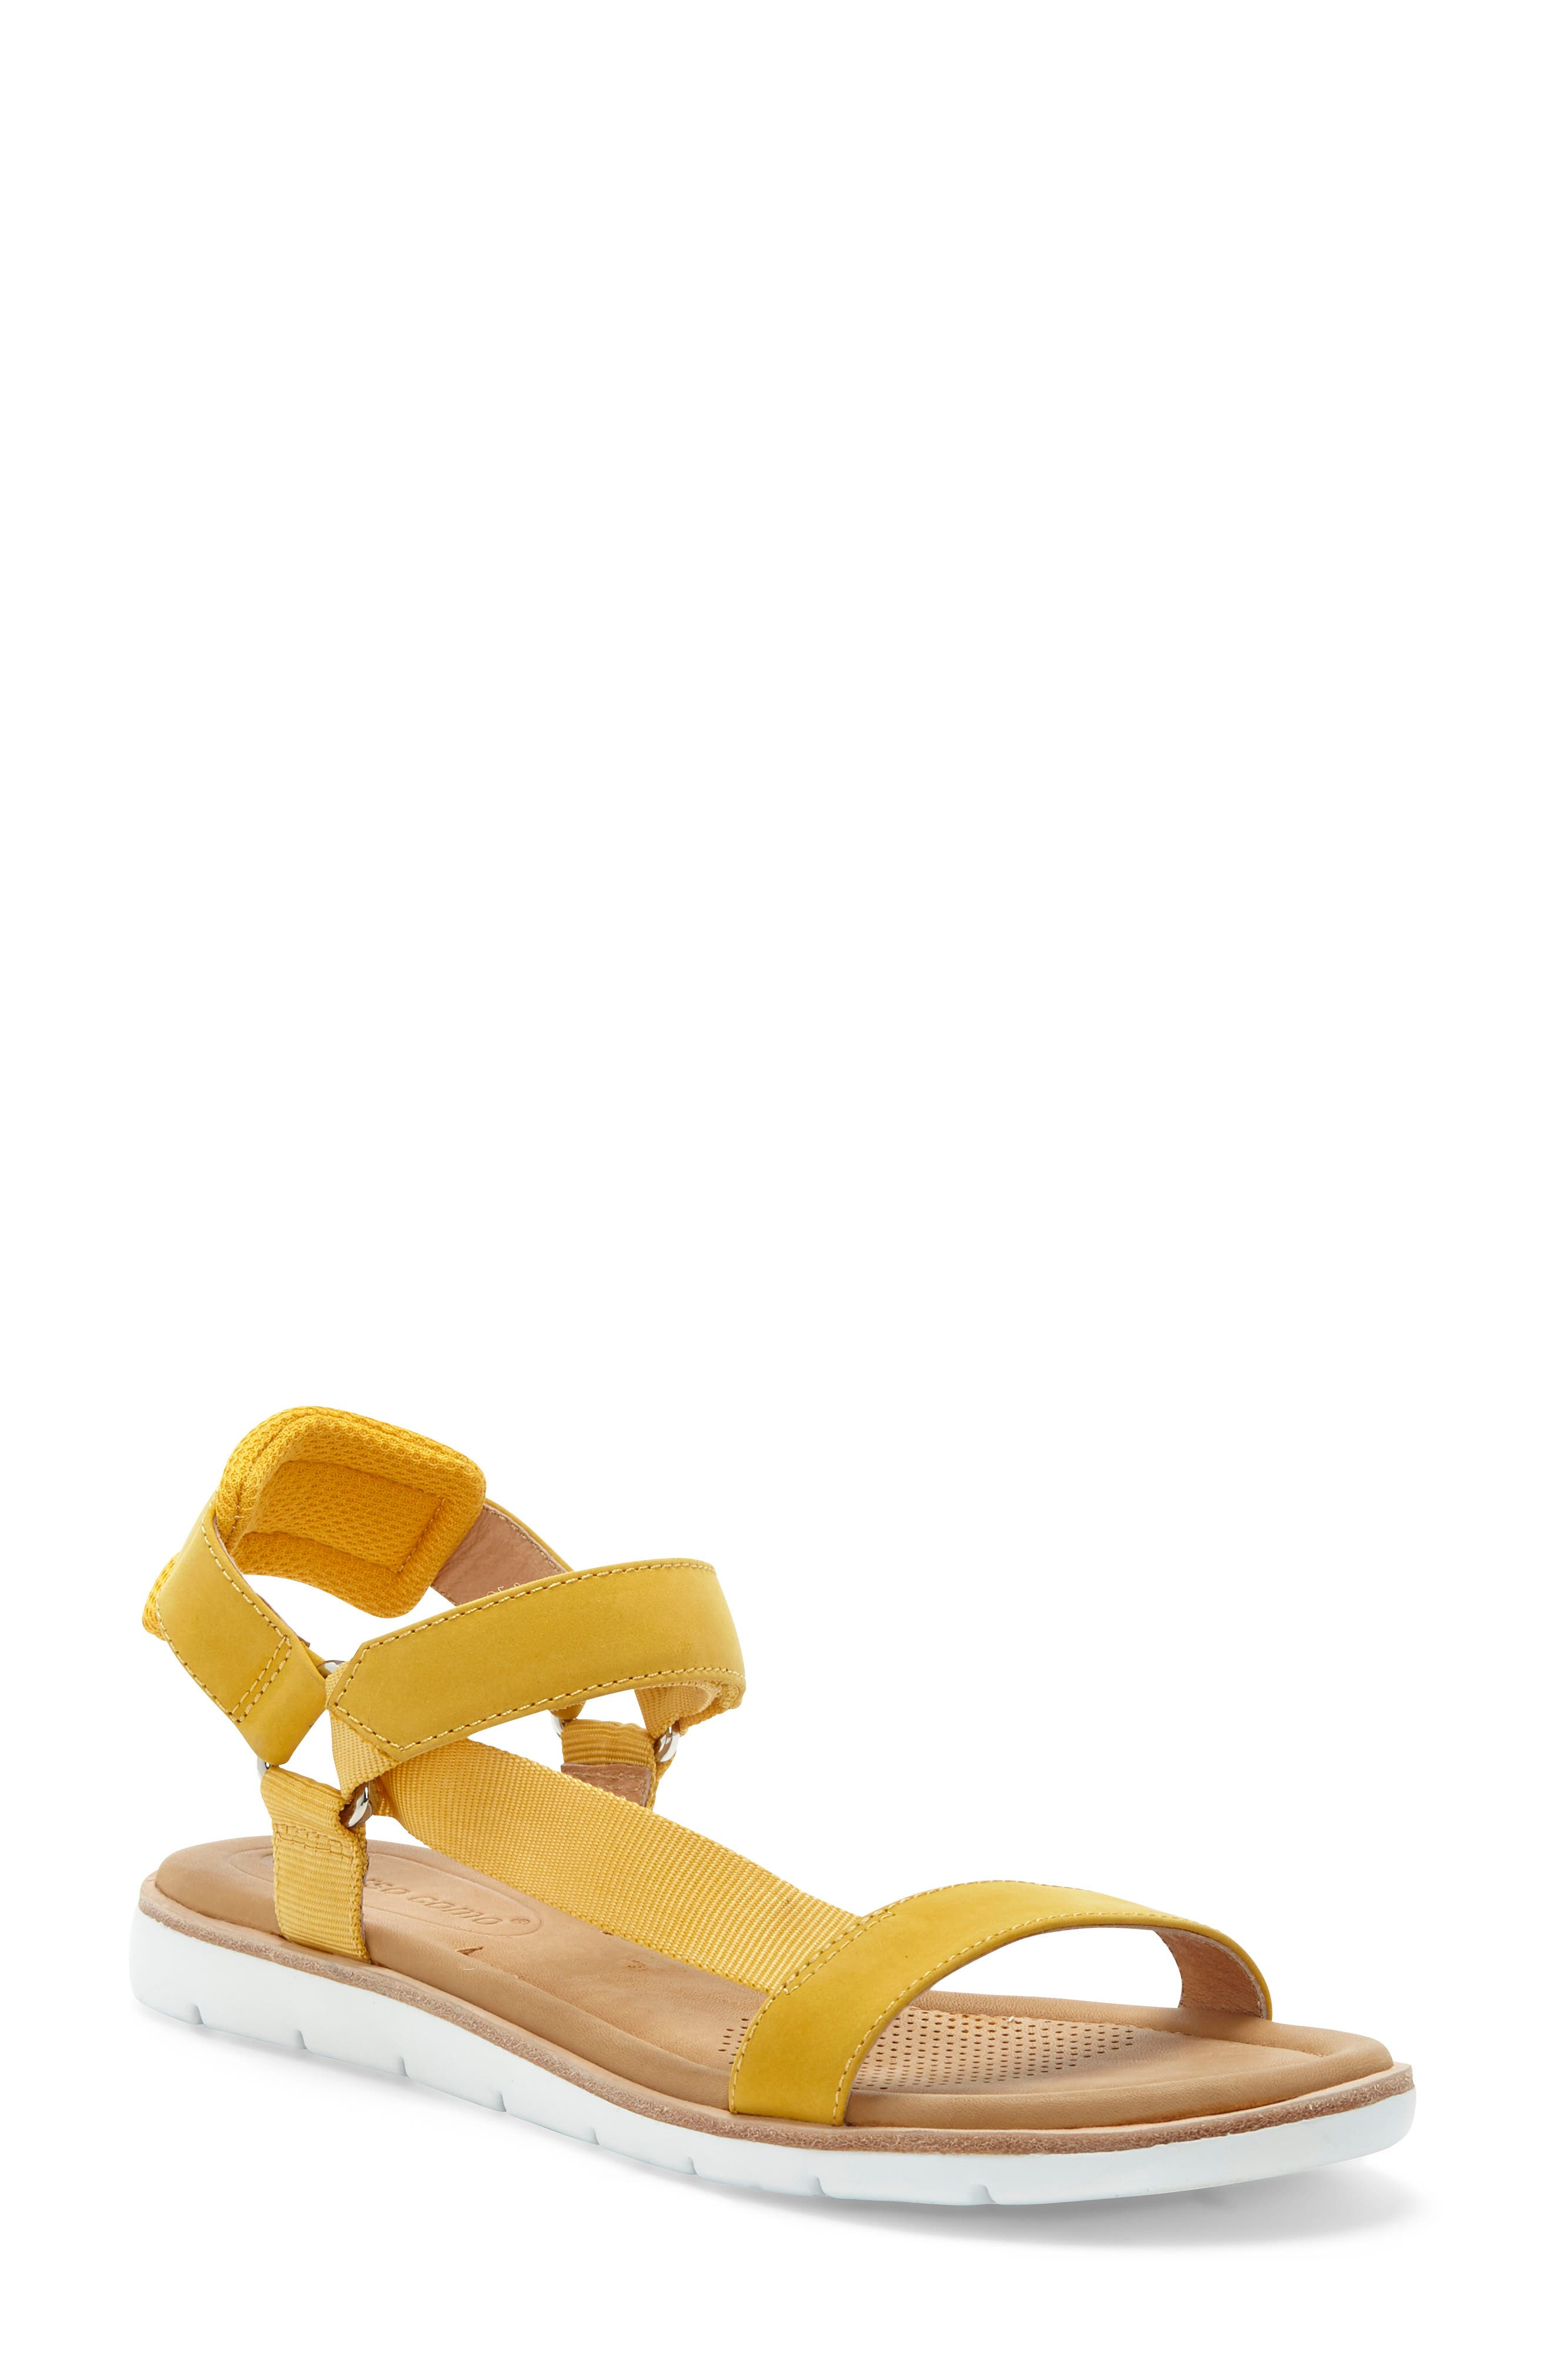 Mixed-media styling defines this sporty-chic sandal designed for comfort with a padded back strap and generously cushioned footbed. Style Name: Cc Corso Como Brawyn Sandal (Women). Style Number: 6032417. Available in stores.